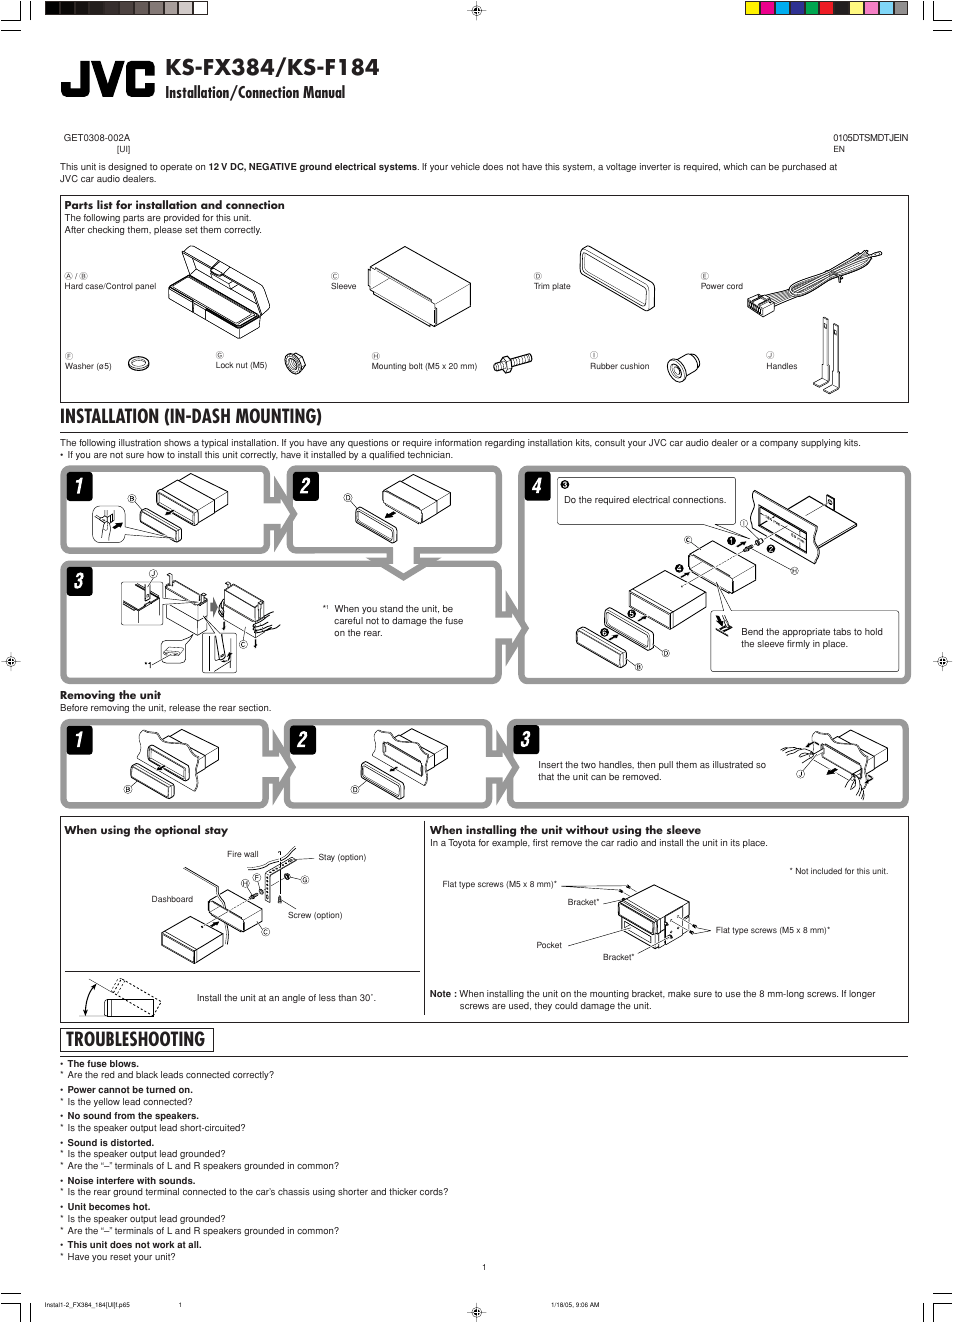 Installation/connection manual, Installation, Troubleshooting | Installation  (in-dash mounting)